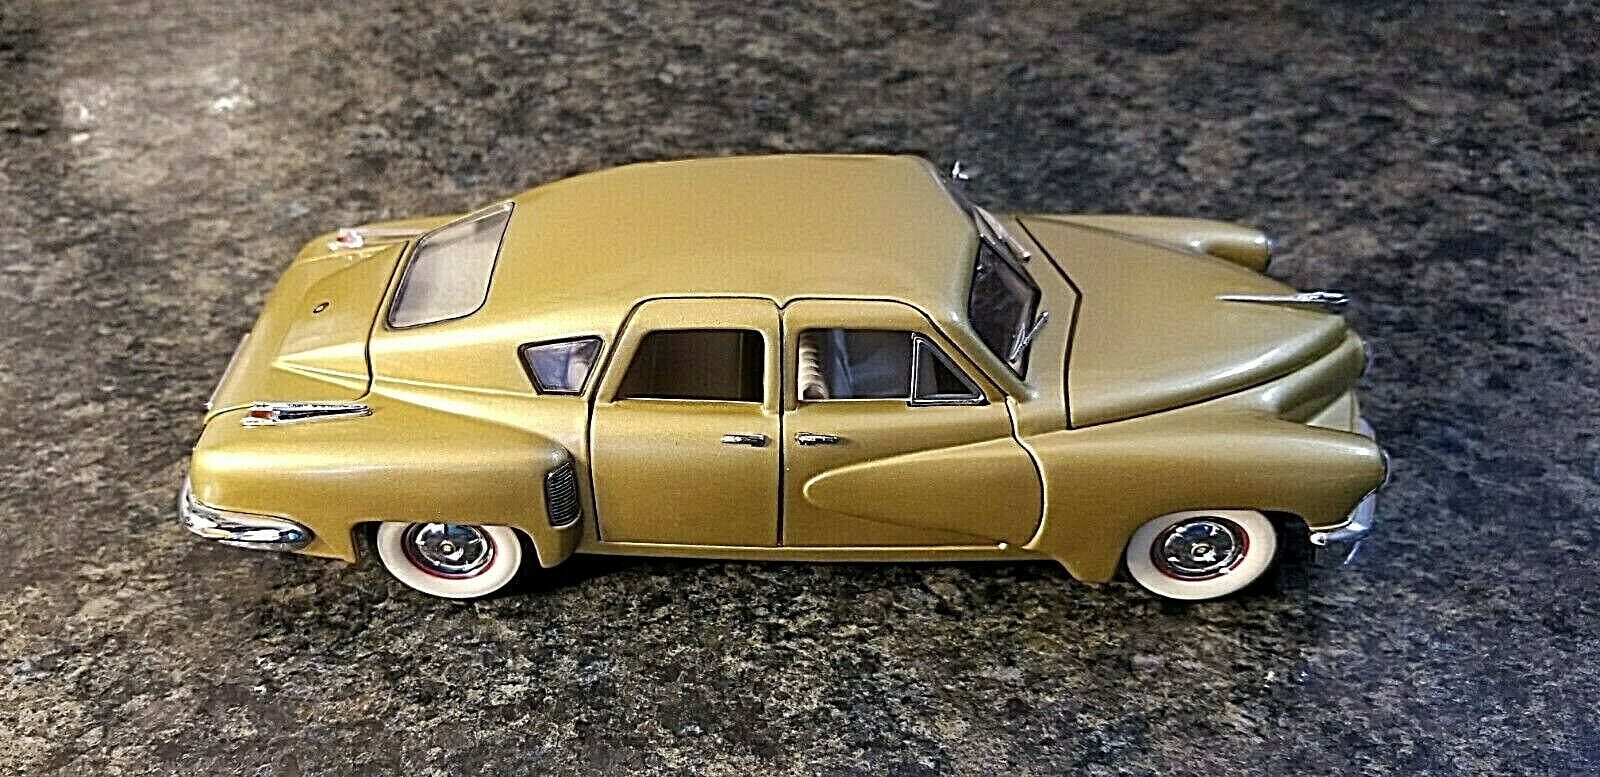 The Franklin Mint 1948 Gold Tucker 50th Anniversary Precision Models (Lot 903)